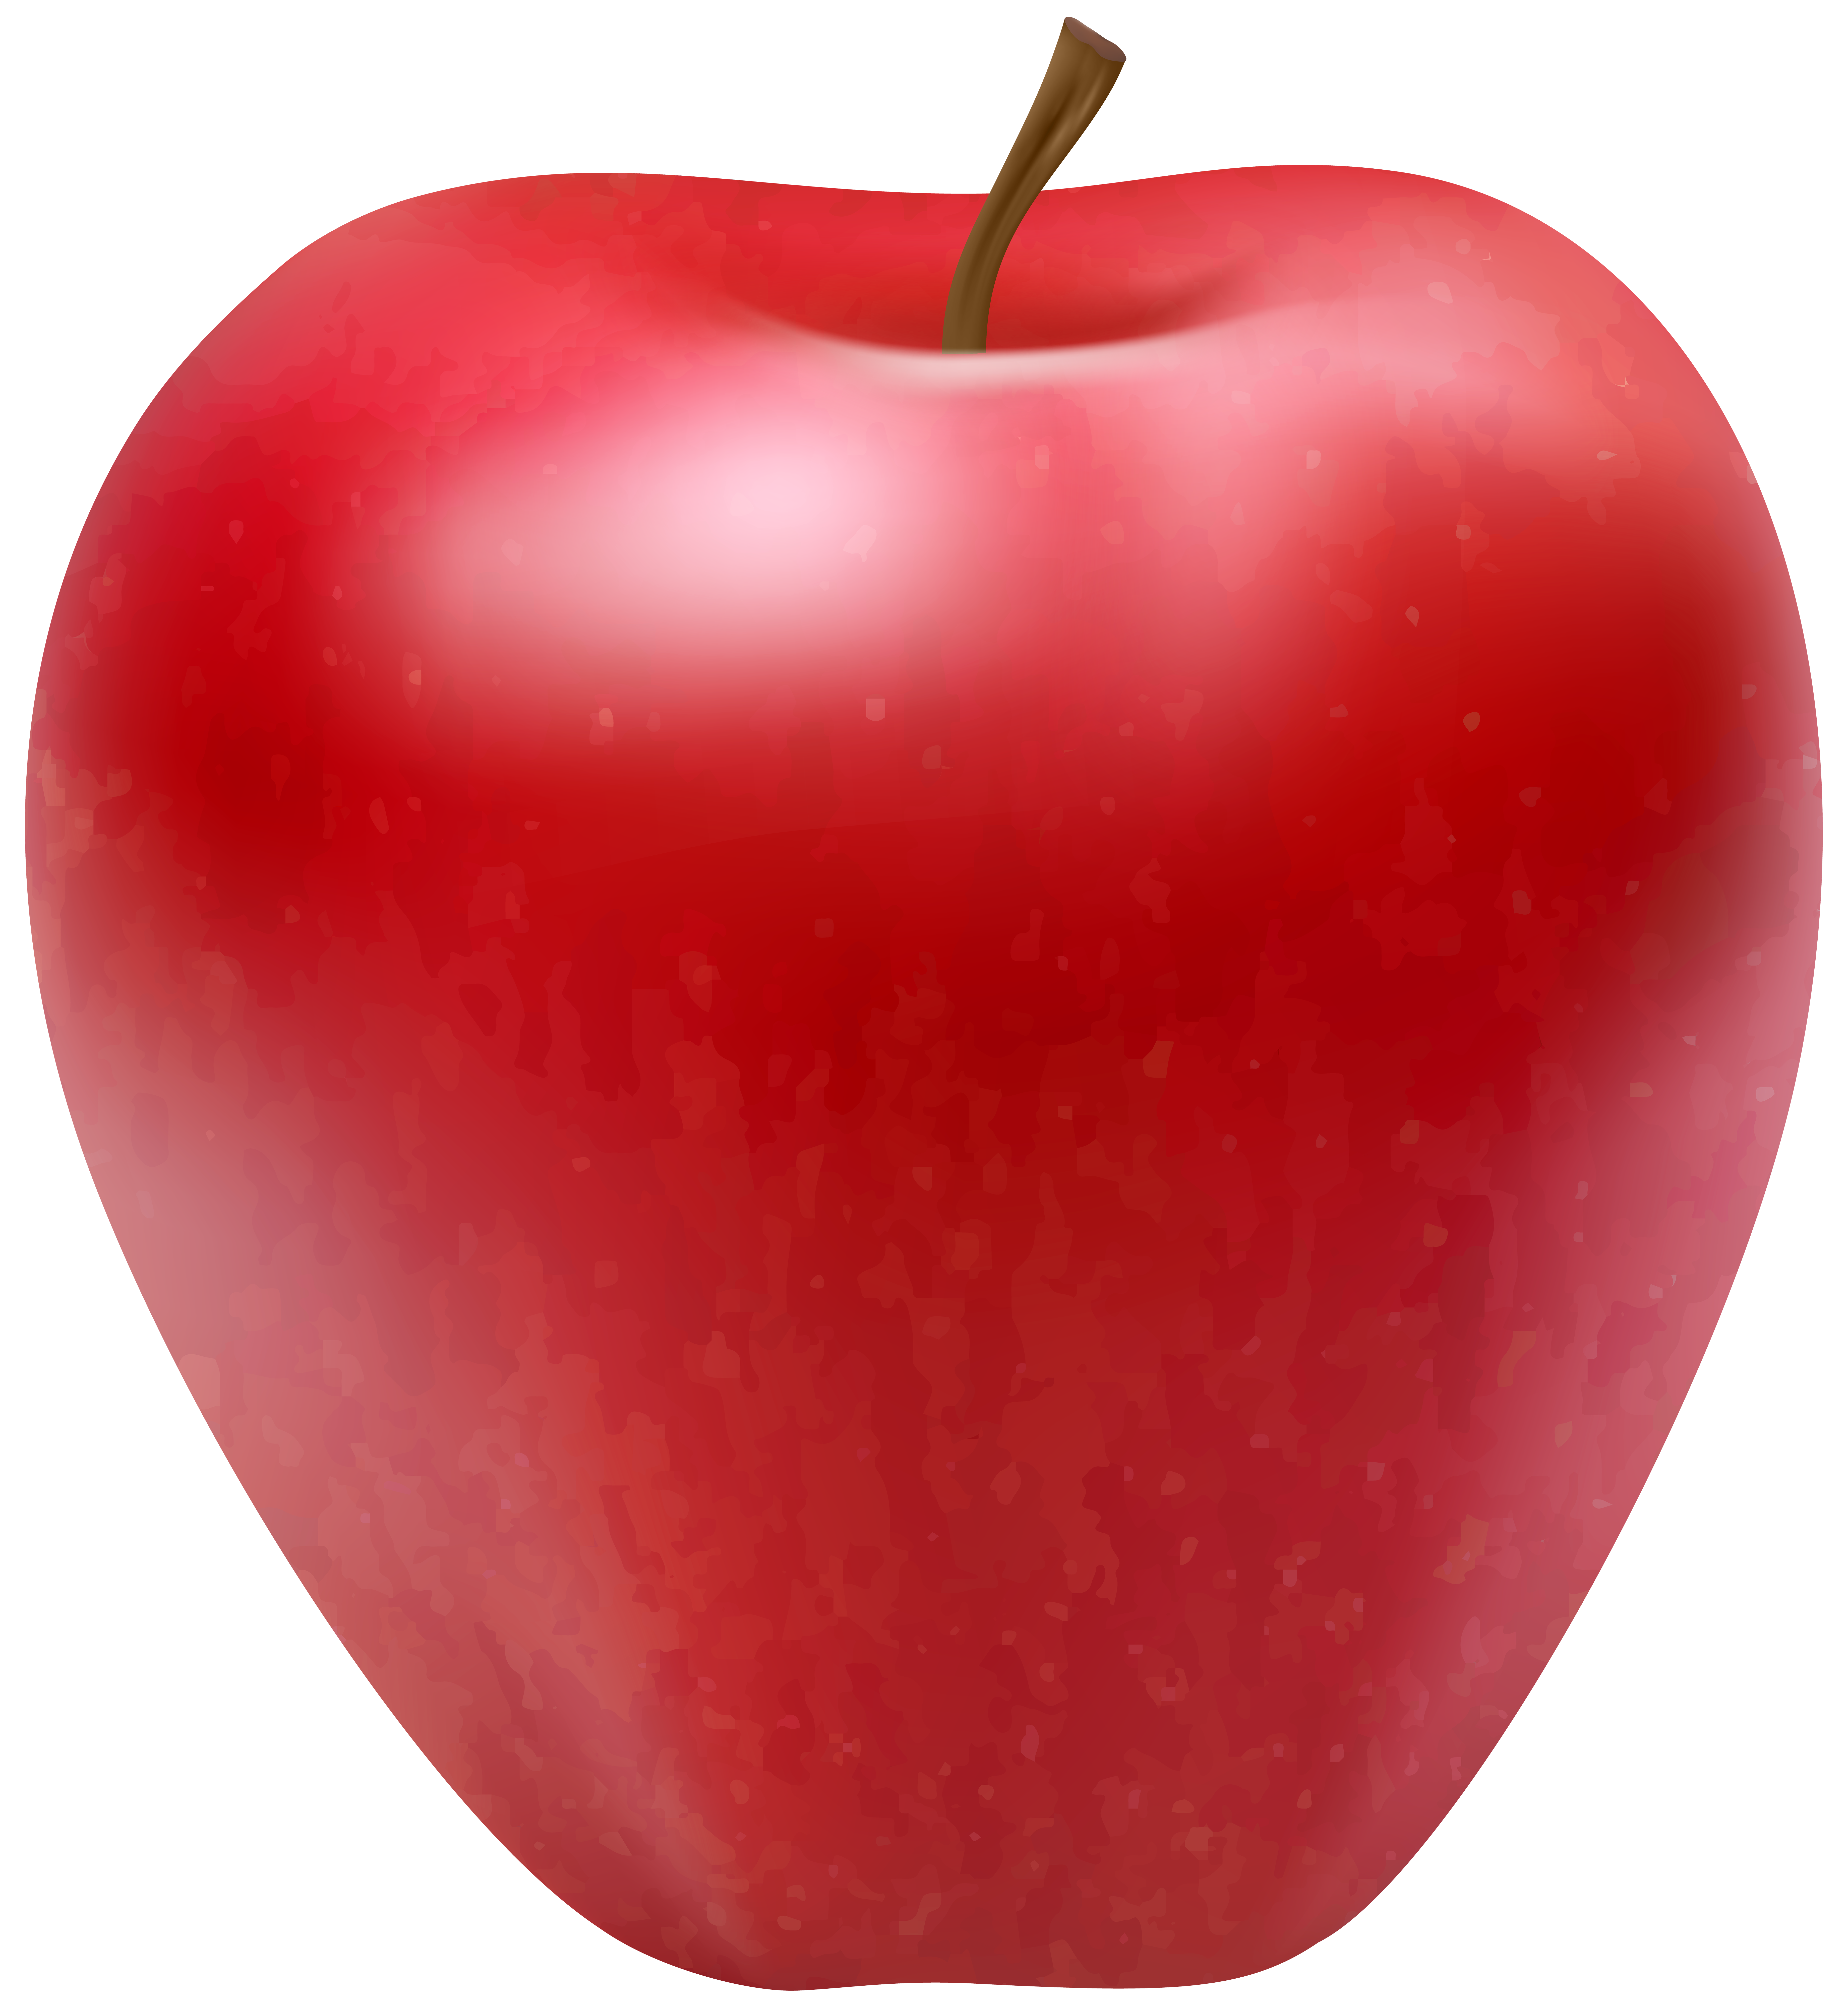 Red Apple PNG Clip Art Image.